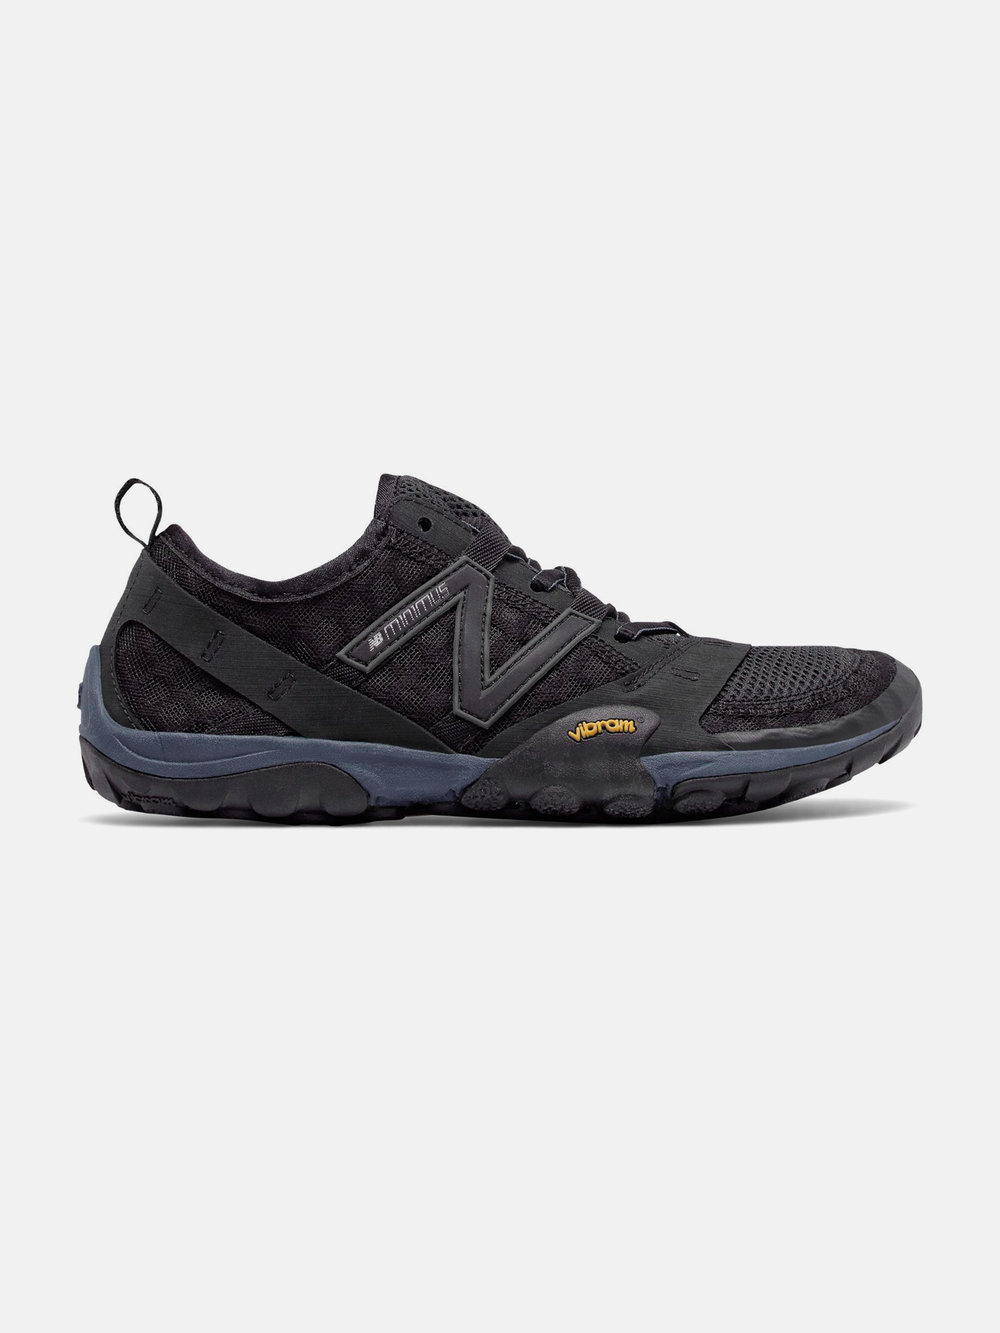 New Balance Trail Runners - $114.99